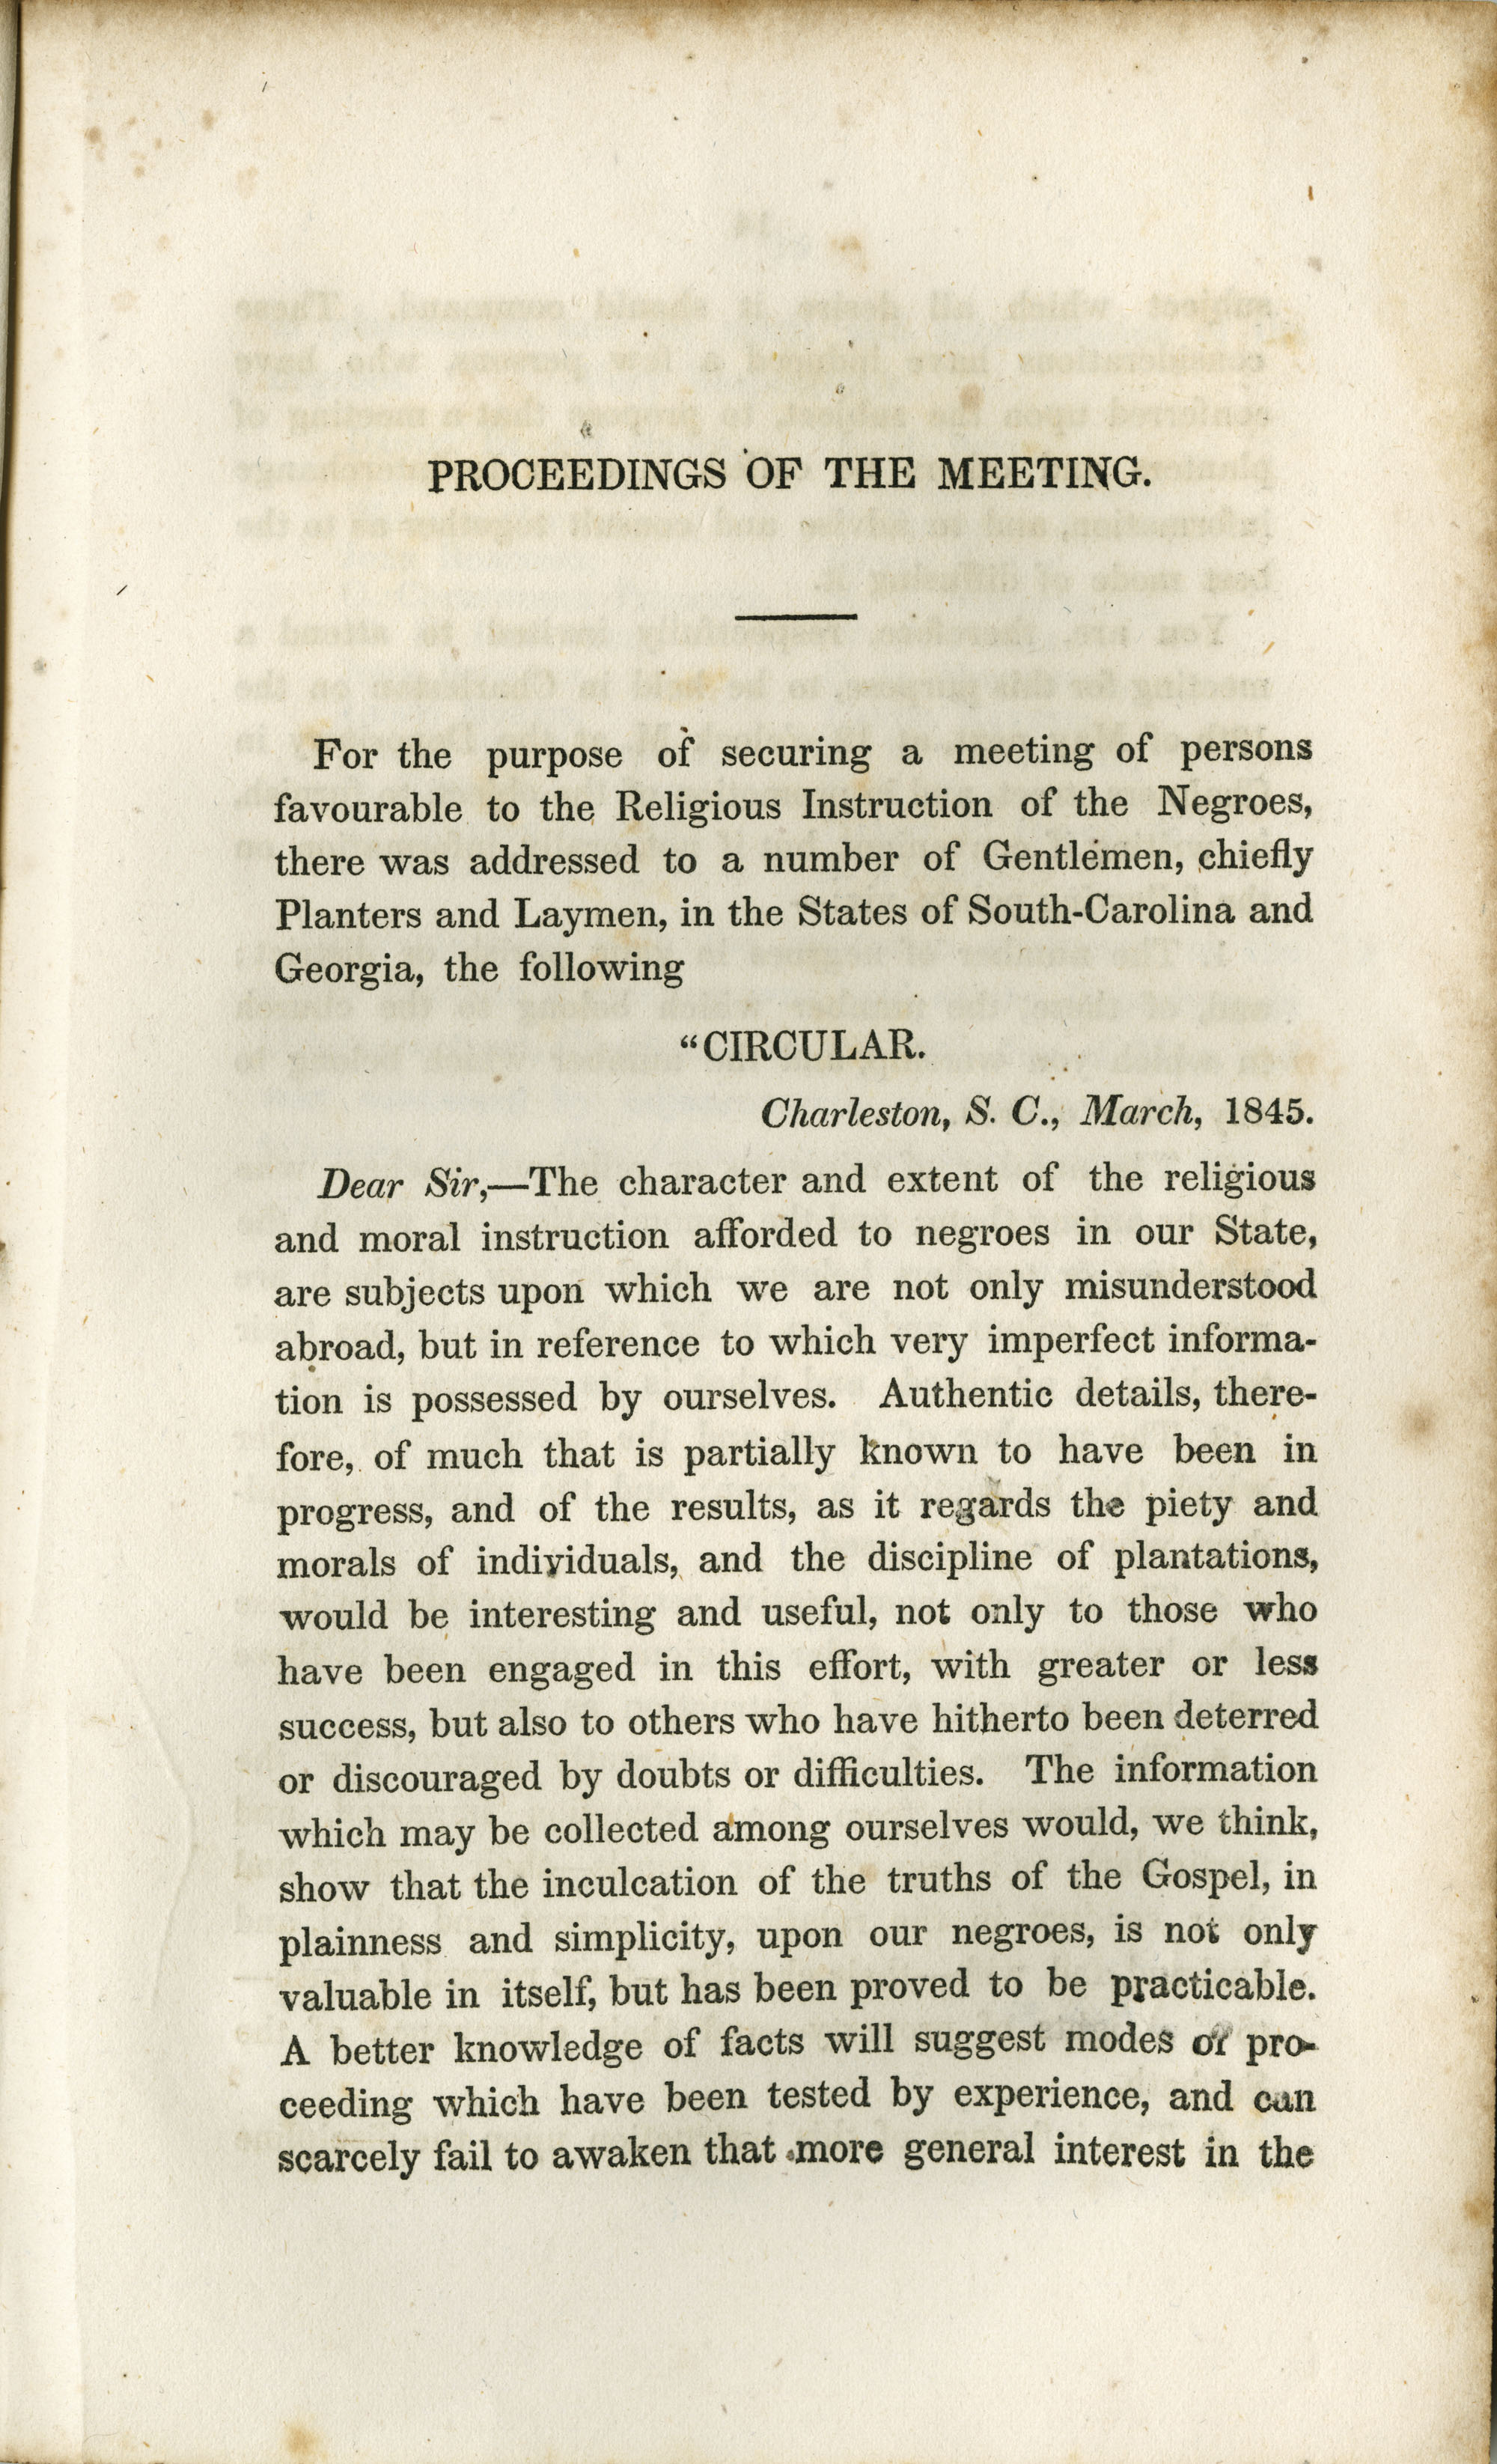 Proceedings of the Meeting, Page 13